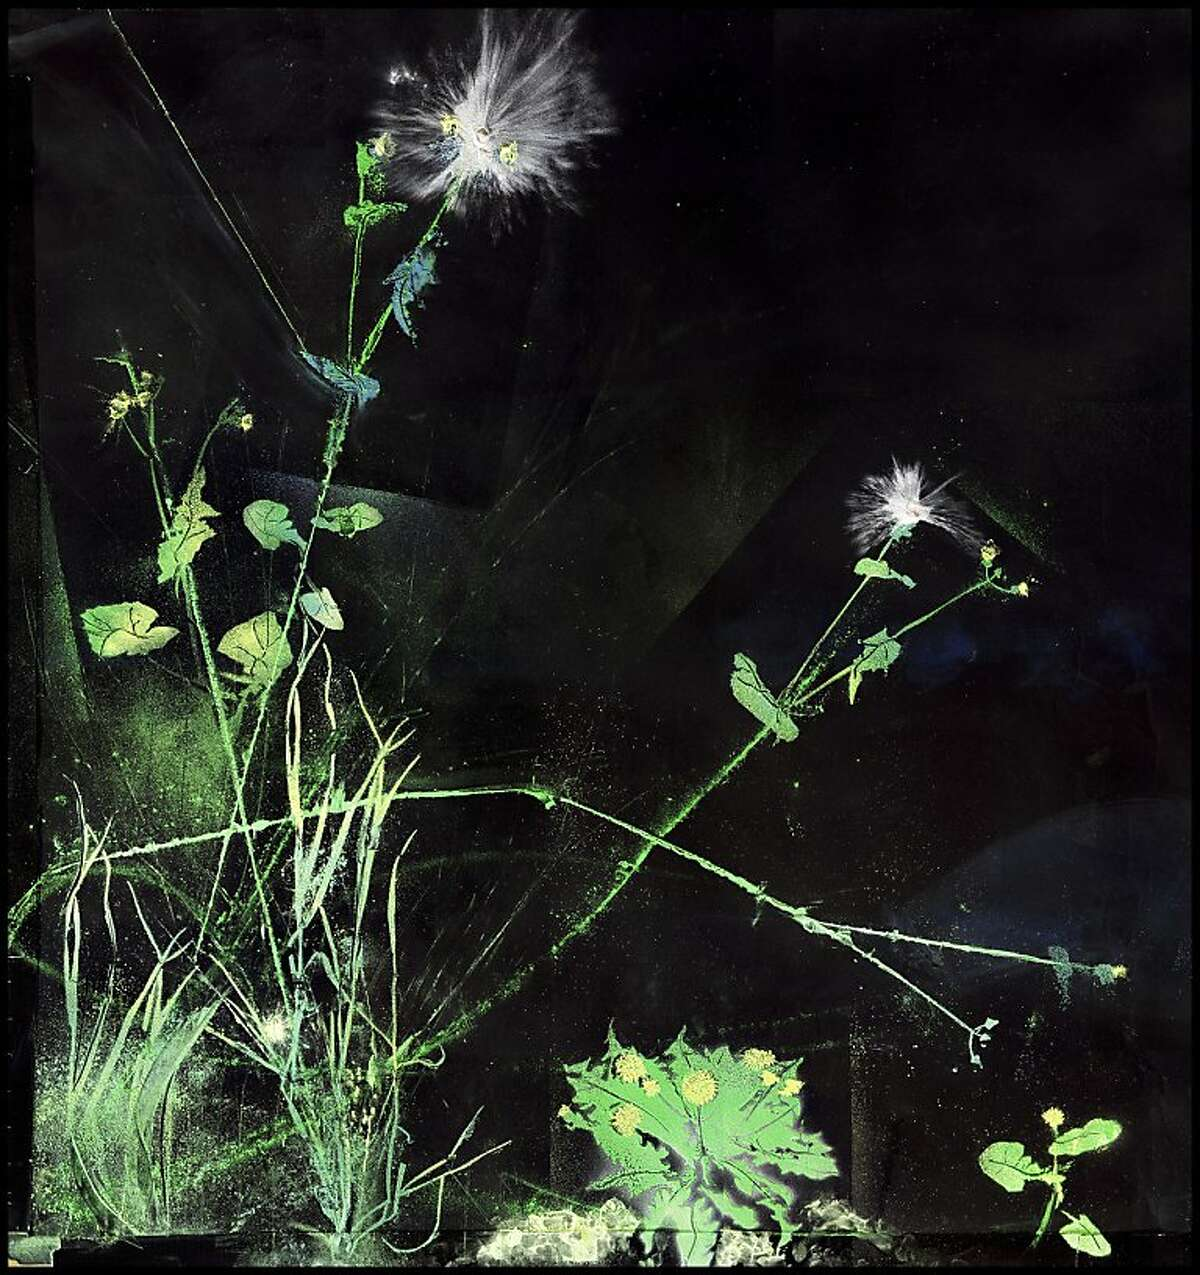 """""""Digitaria Sanguinalis and Taraxicum Officinale Study"""" is an archival light-jet print by Kelly Barrie, whose work is on view at Gallery Wendi Norris. (Detail of the original work.)"""